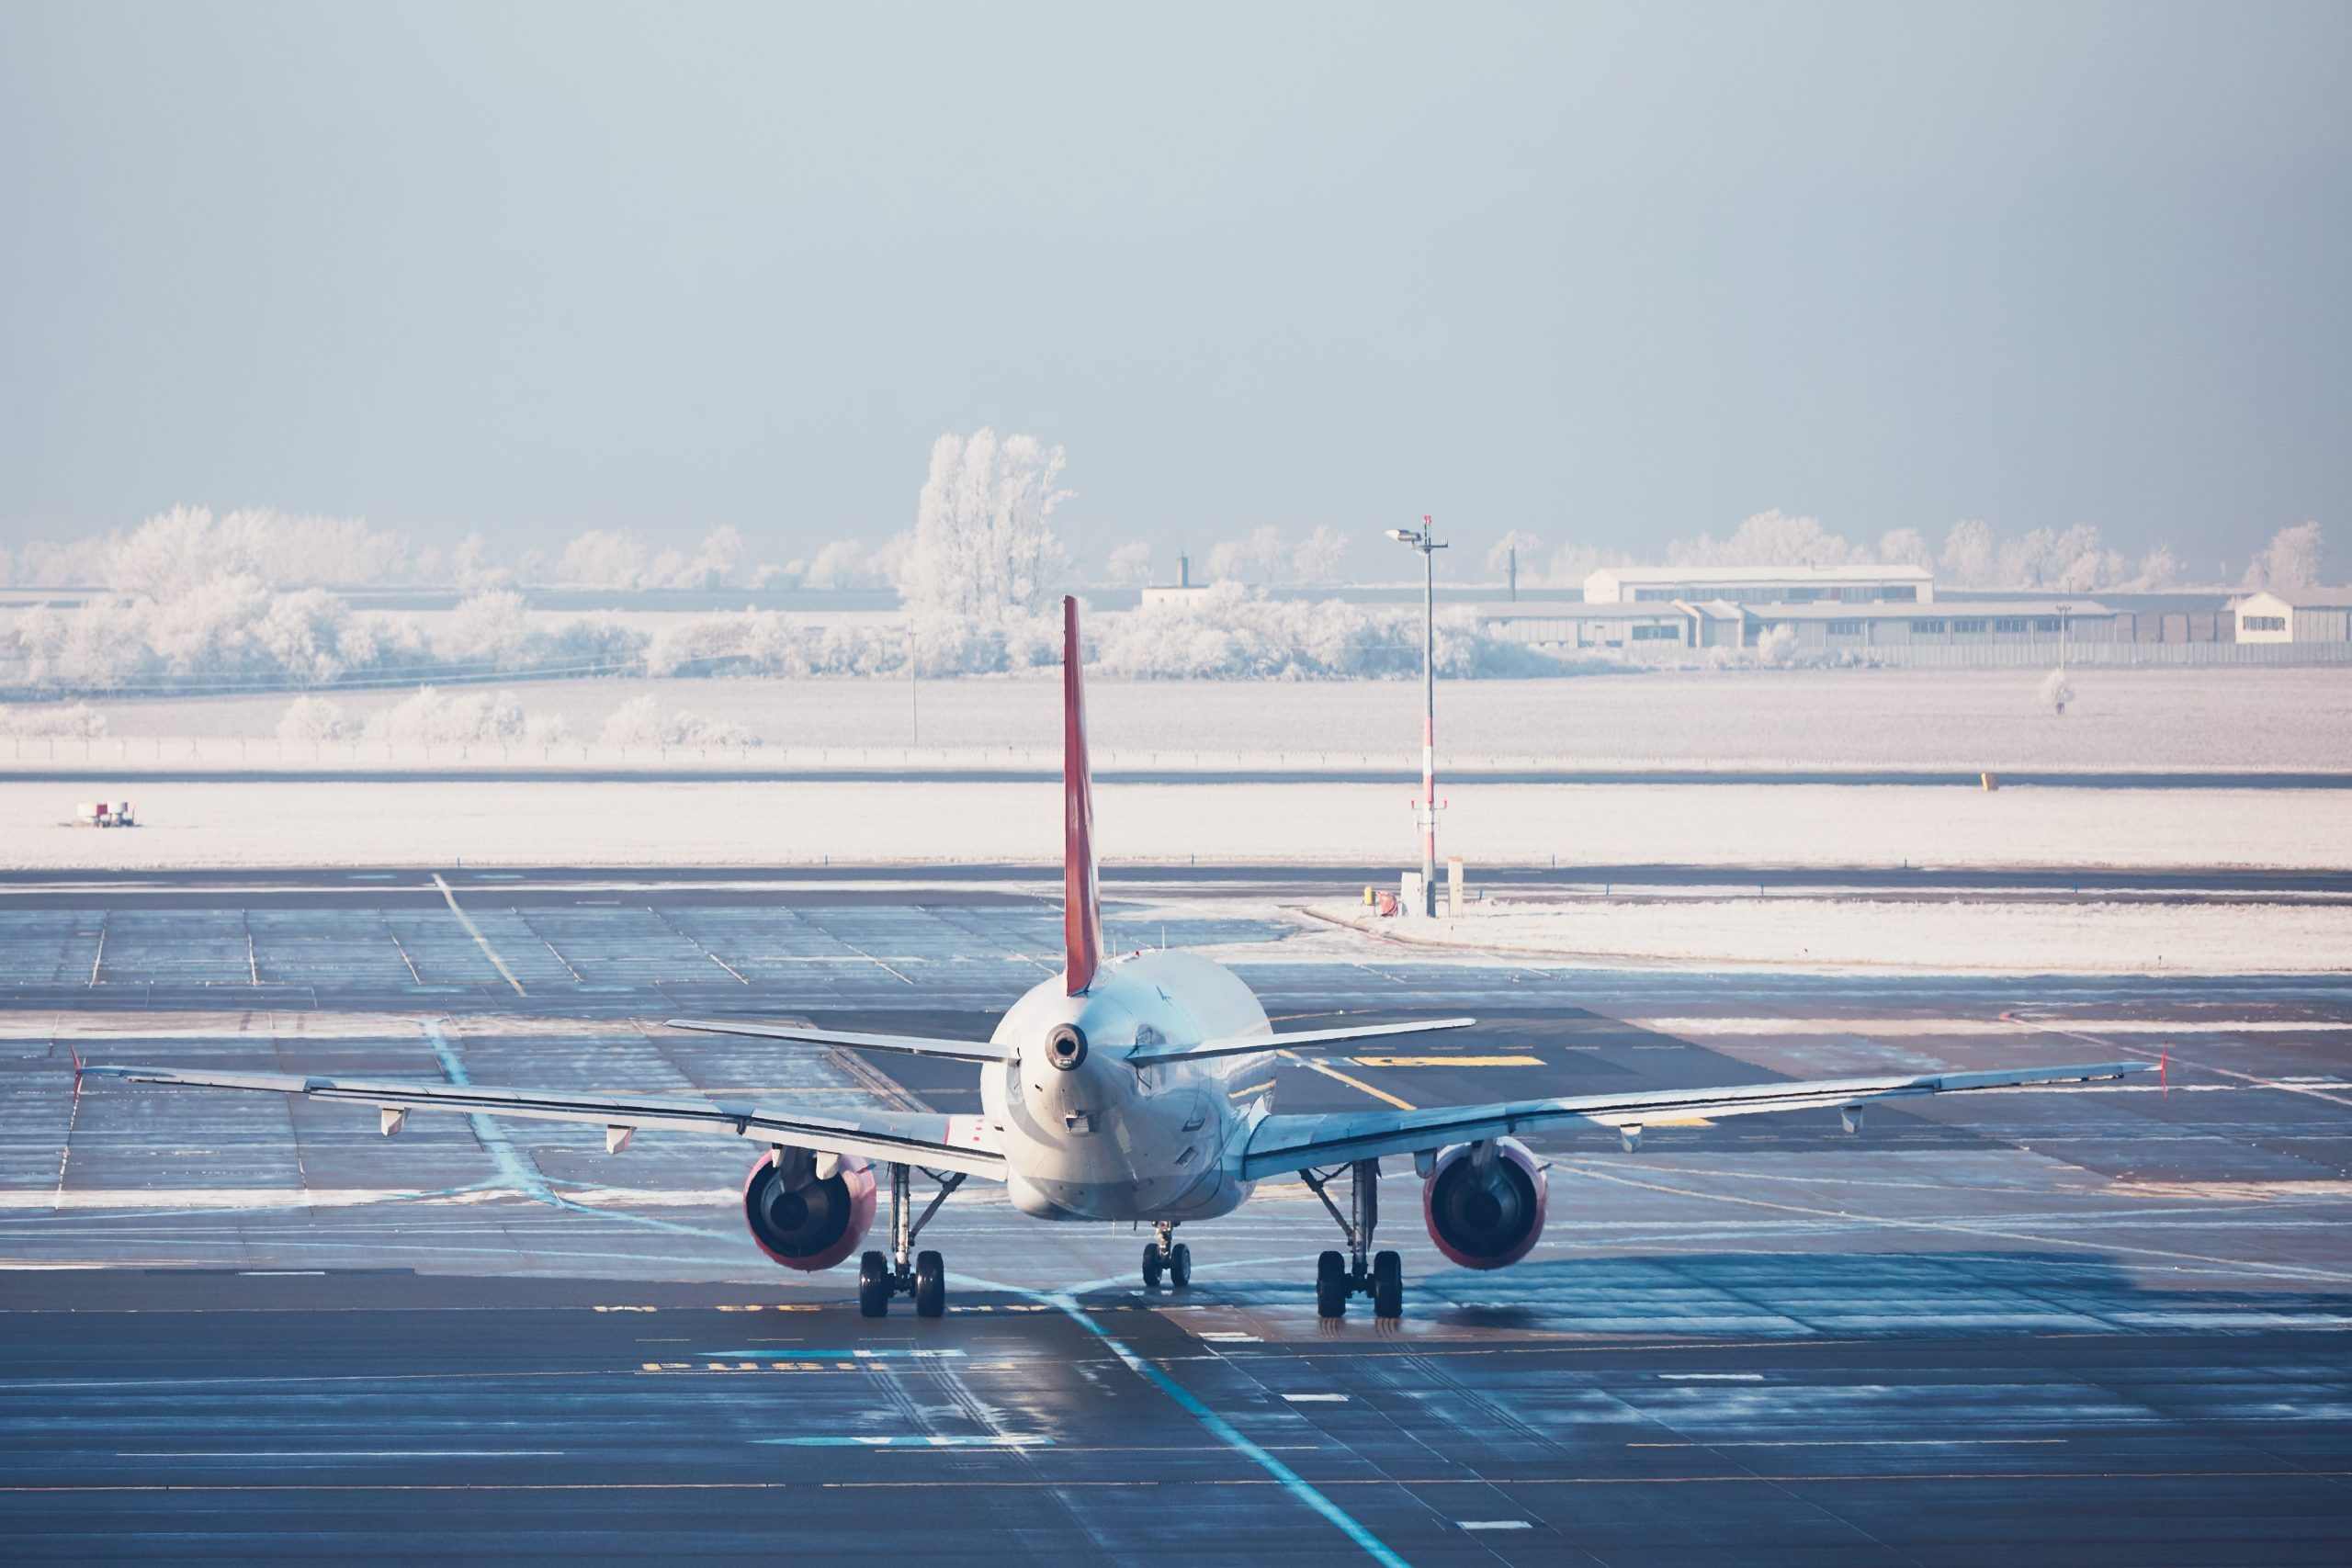 Airport in winter. Airplane is taxiing to the runway for take off.